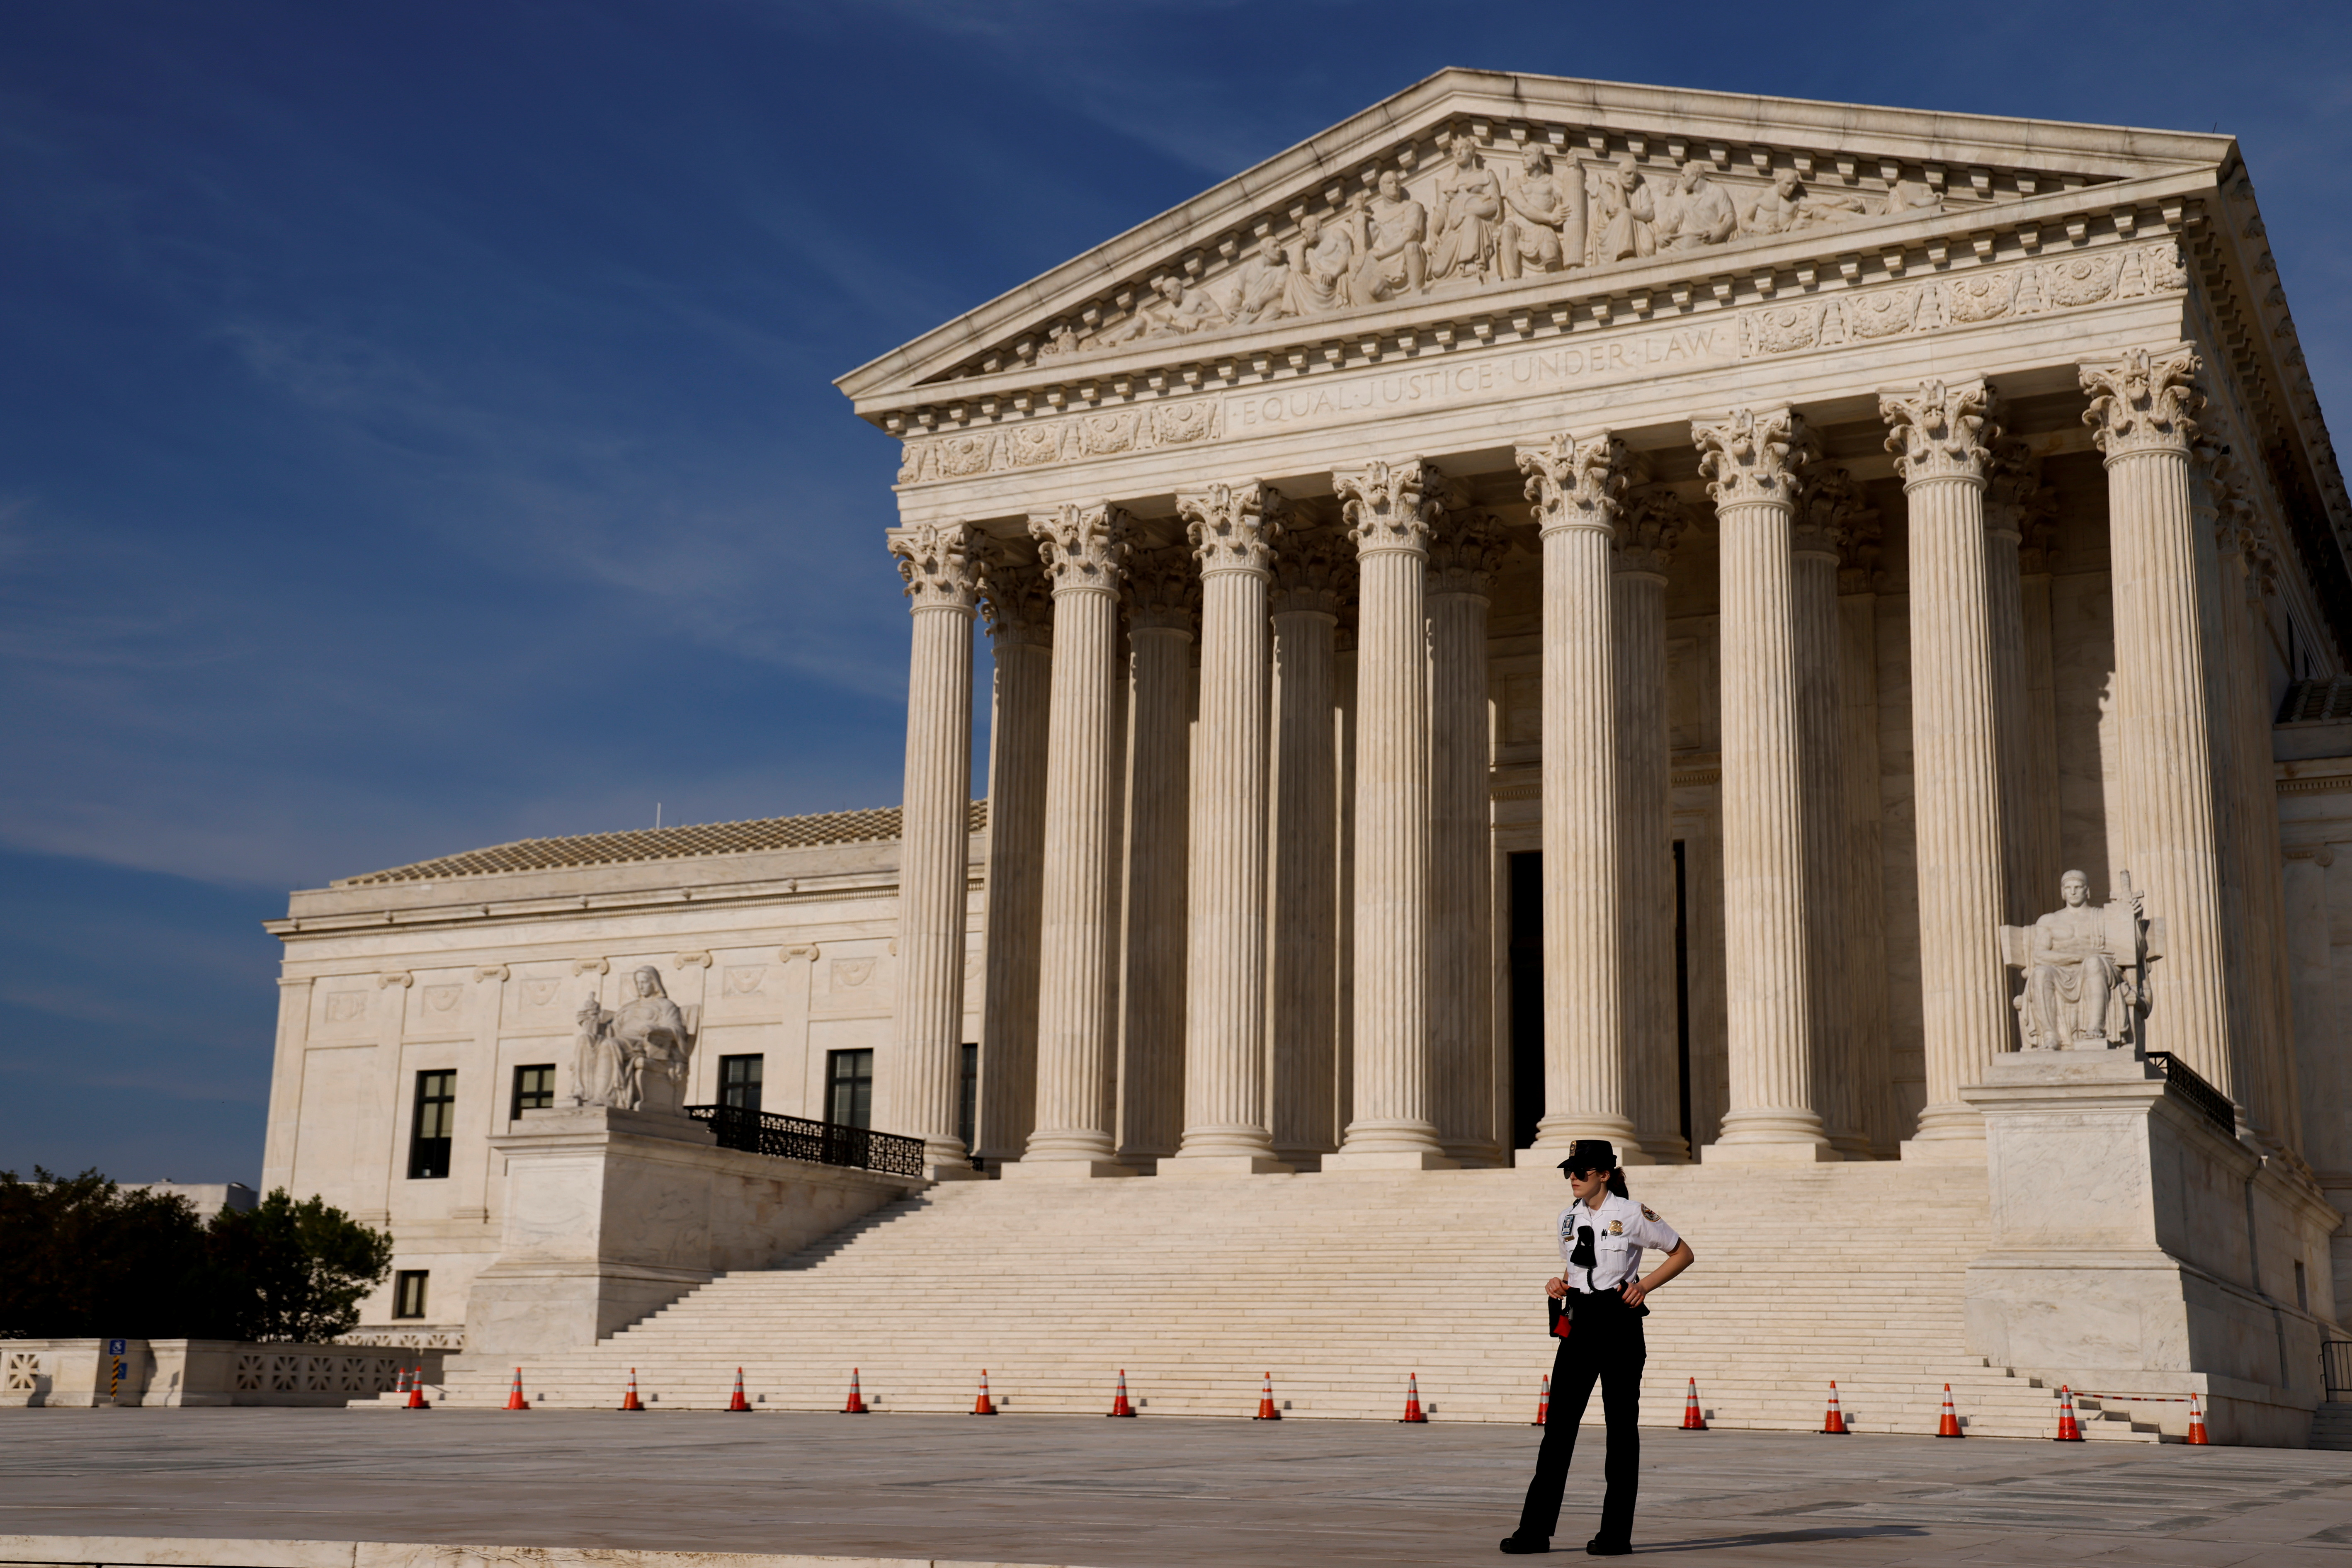 A U.S. Supreme Court police officer patrols the plaza in front the court building in Washington, U.S. May 17, 2021. REUTERS/Jonathan Ernst